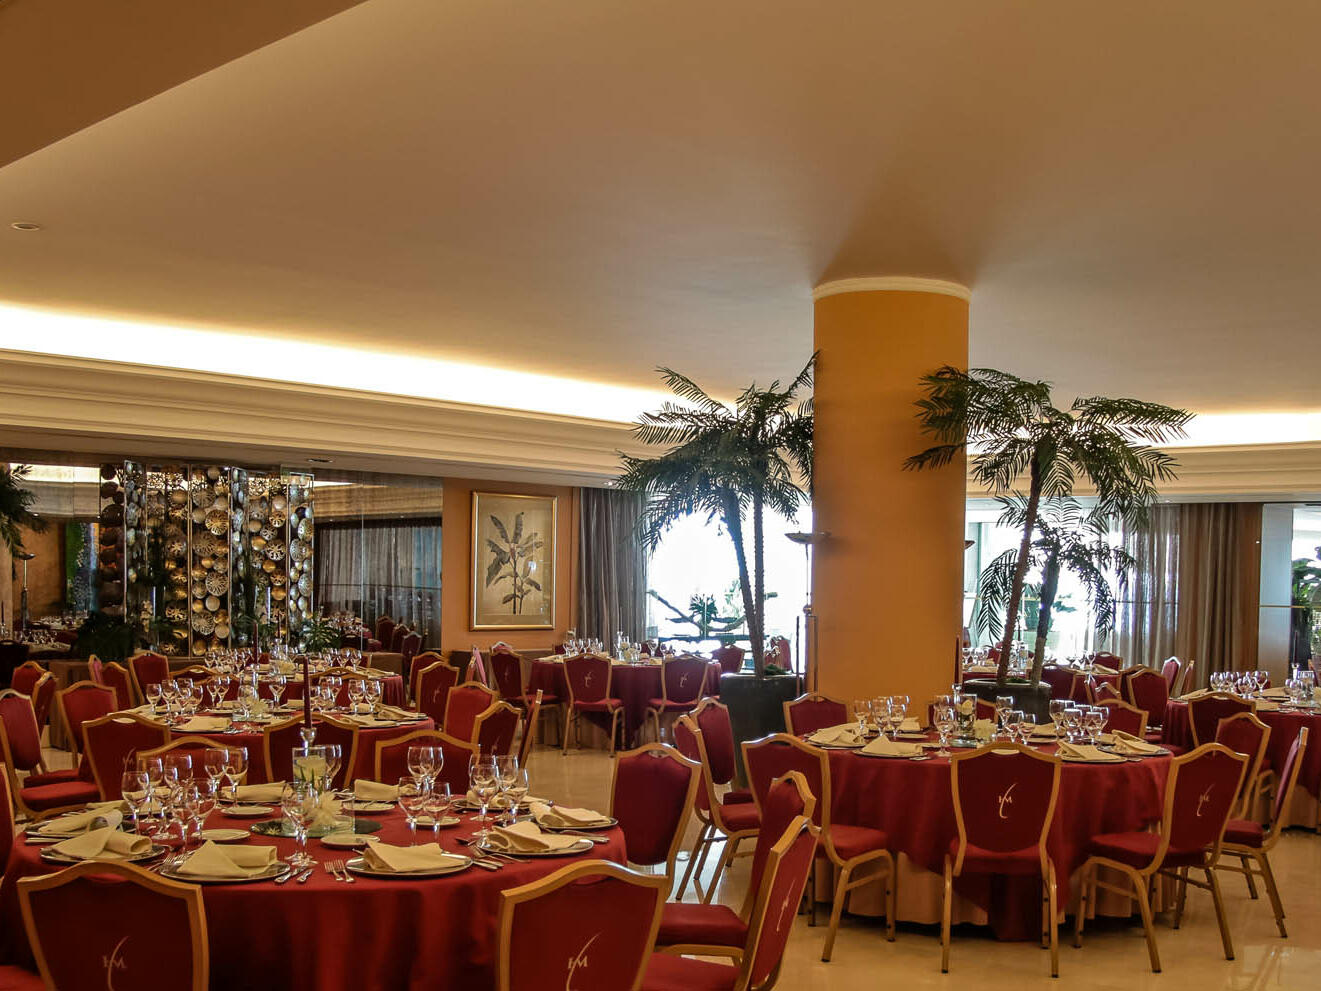 Room with round tables and red chairs at Hotel Cascais Miragem